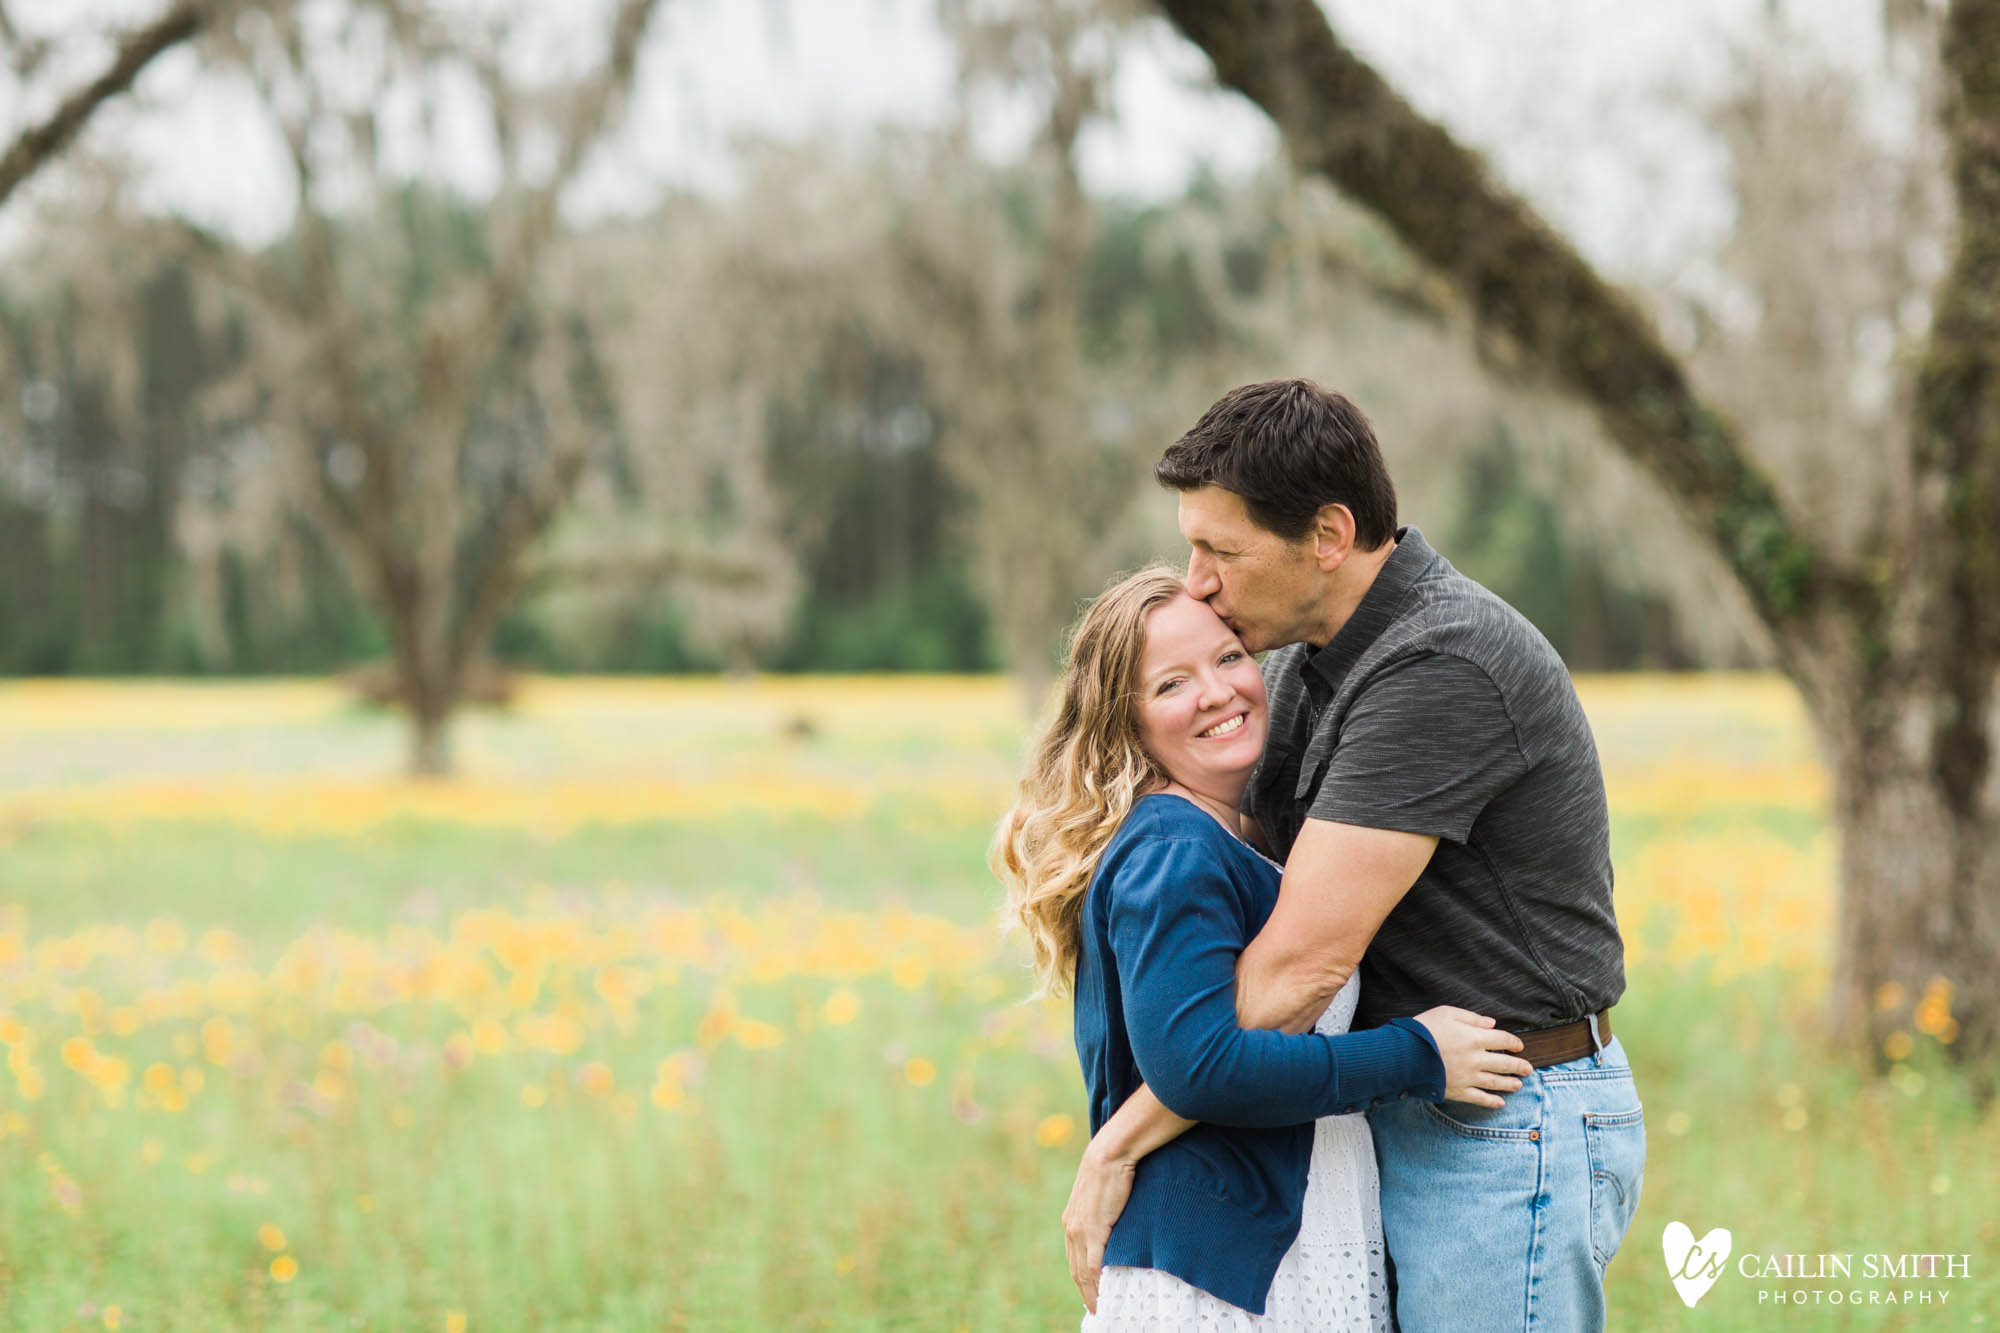 Christie_Nathan_Flower_Field_engagement_Photography_004.jpg